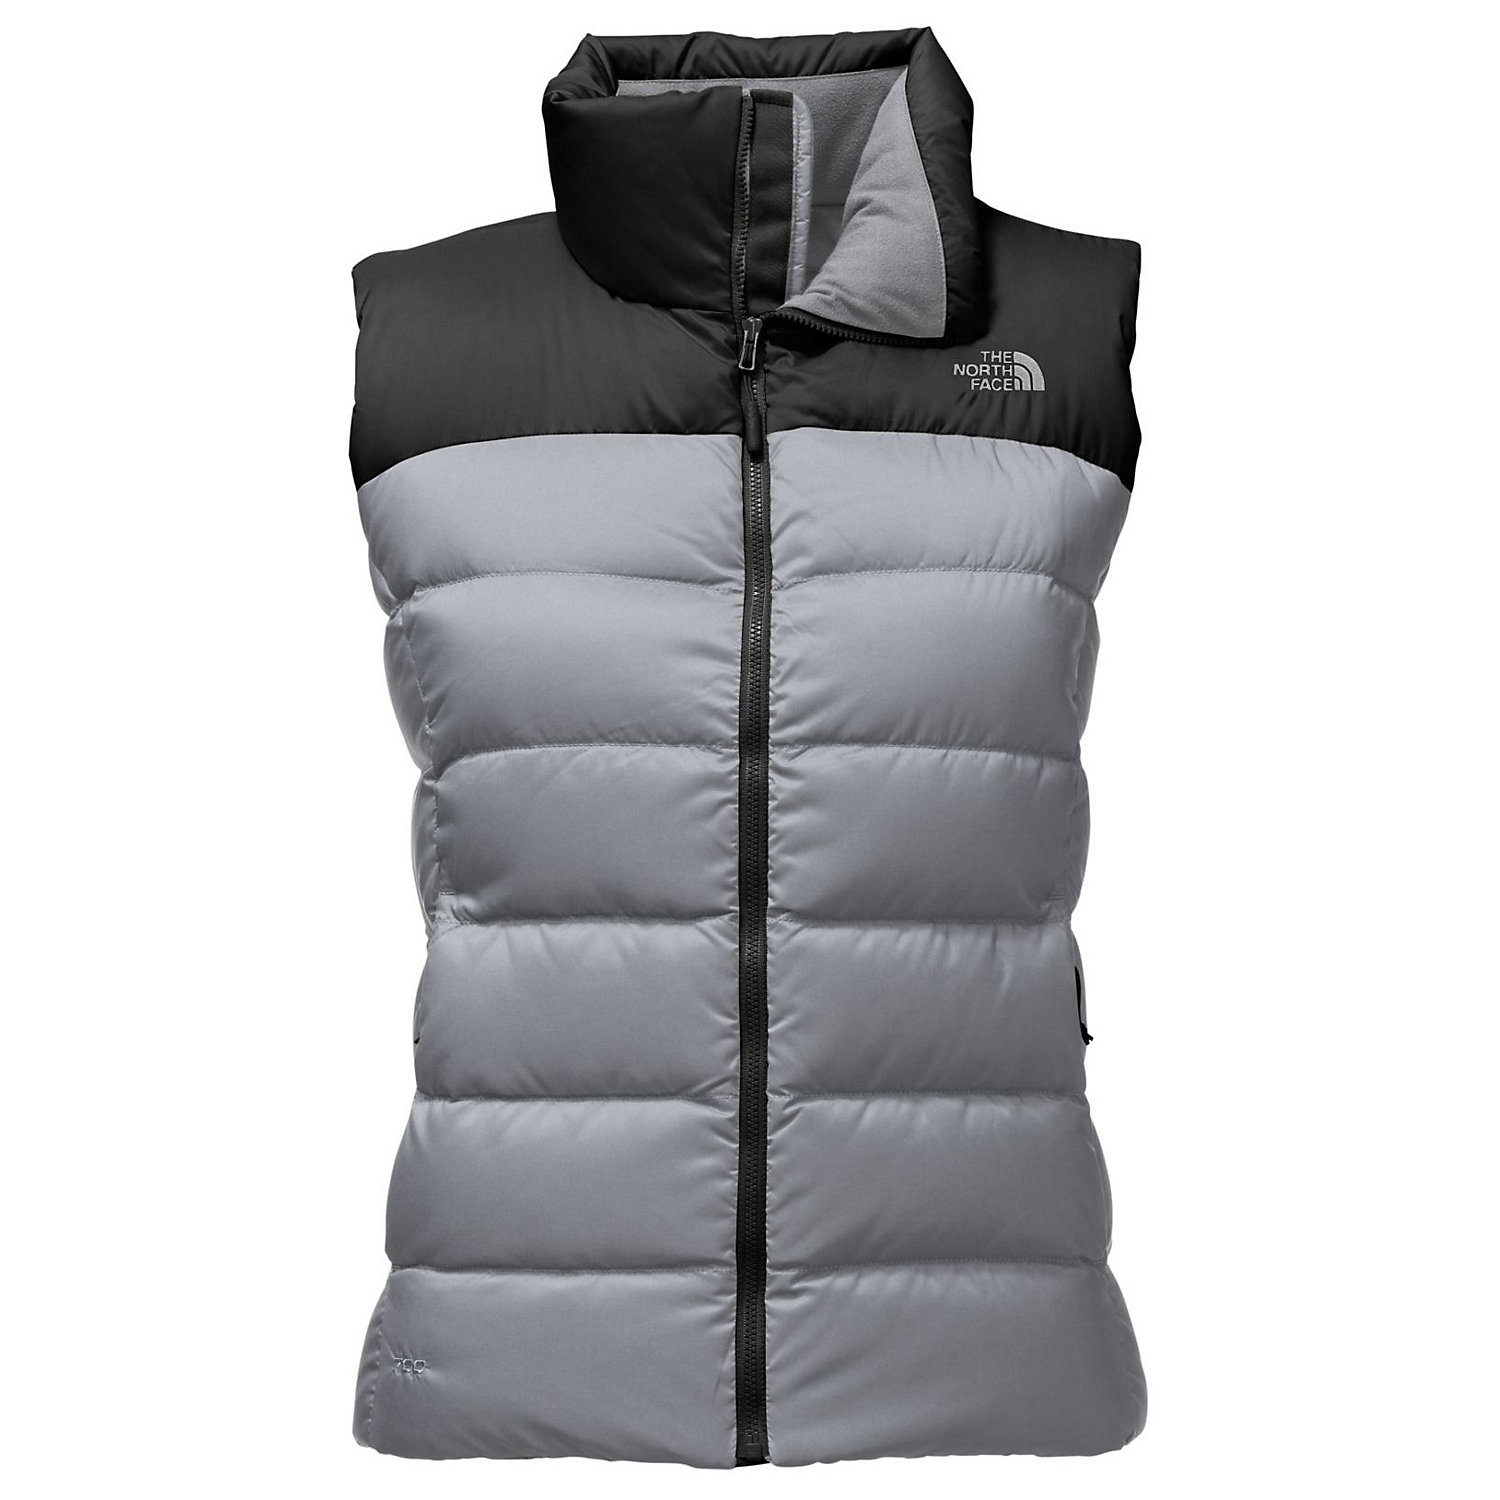 19ad804d6 The North Face Women's Nuptse Vest